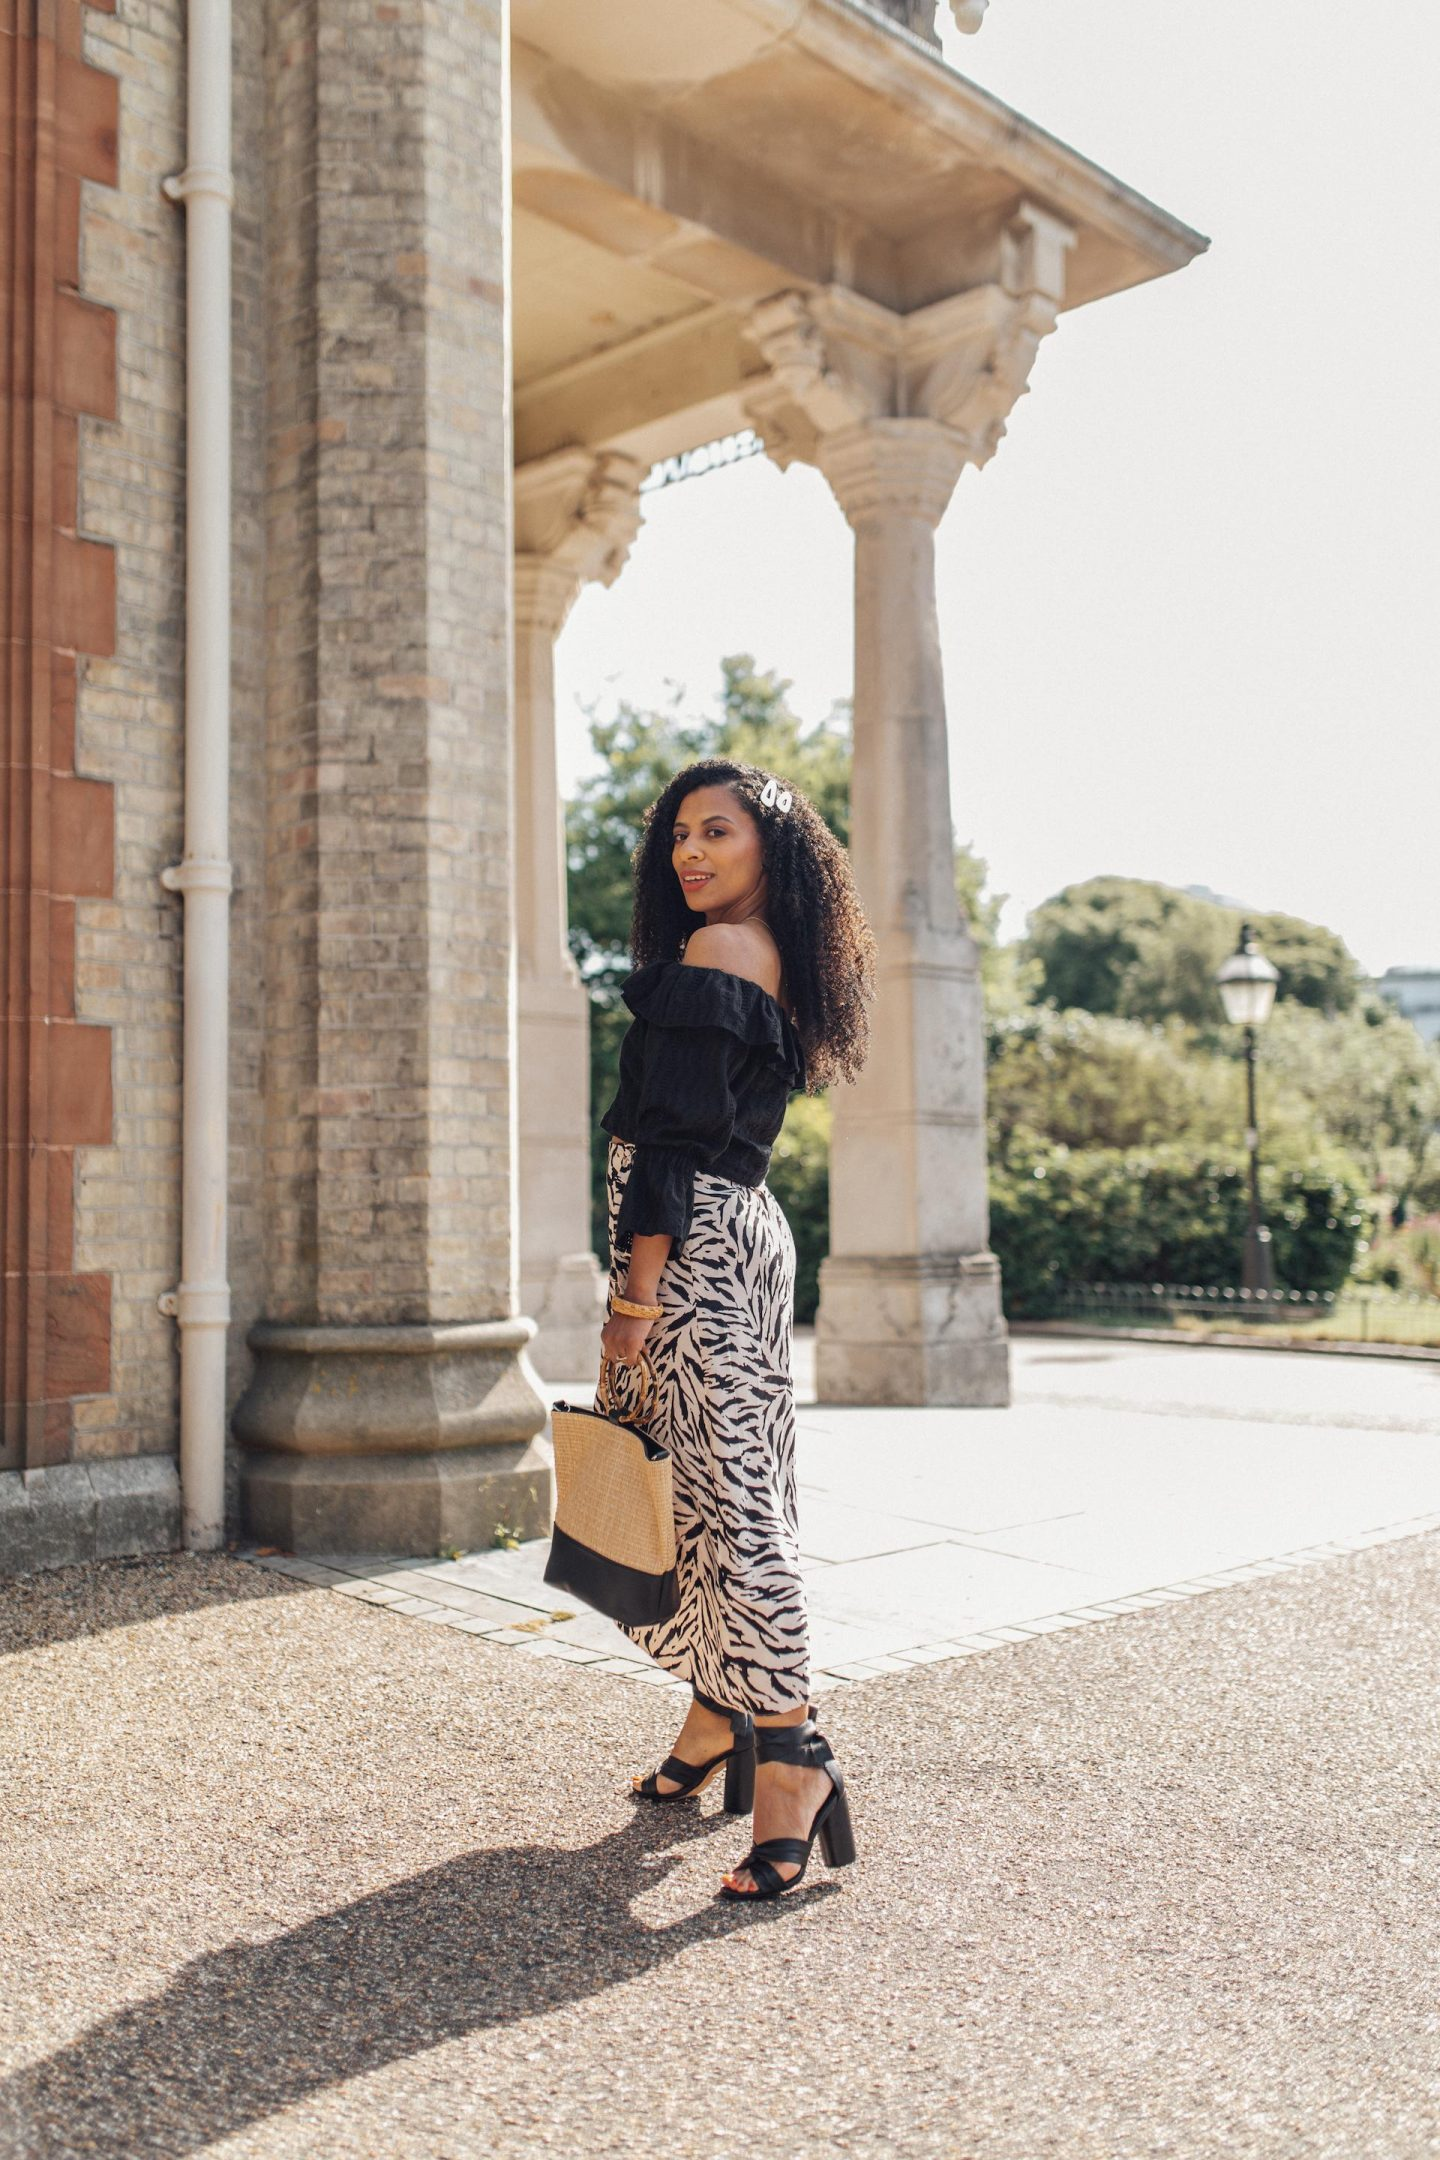 HOW TO STYLE AN ANIMAL PRINT SKIRT